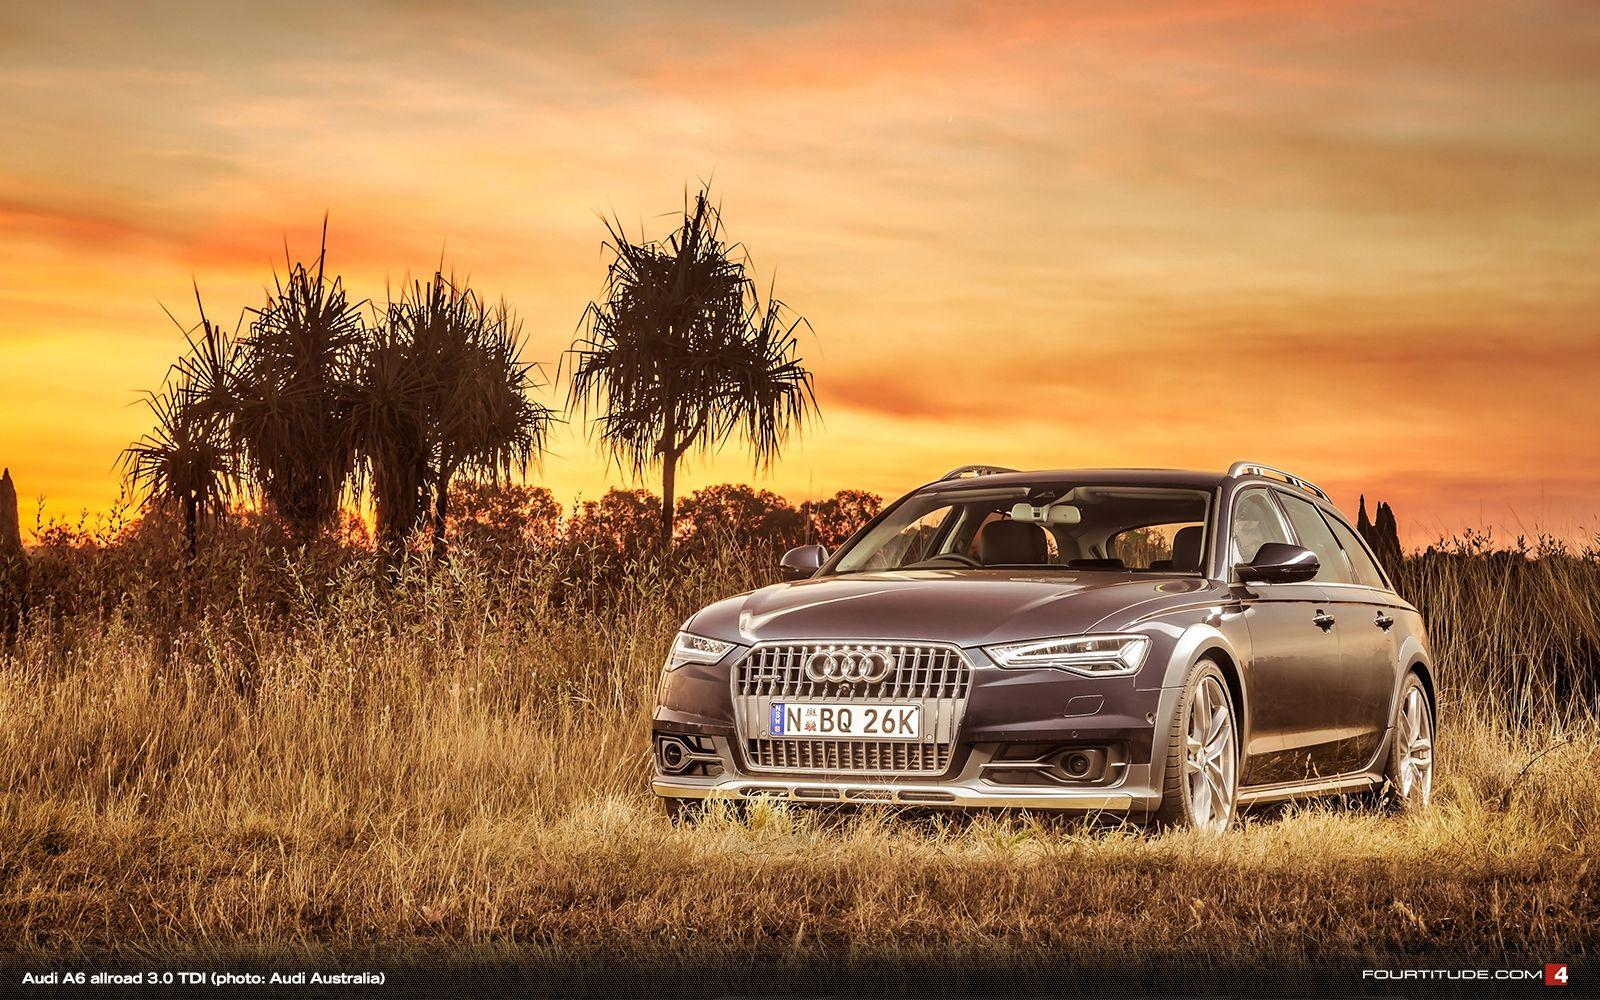 New Audi A6 Allroad | Audi | Pinterest | Audi, Audi a6 and Audi a6 ...